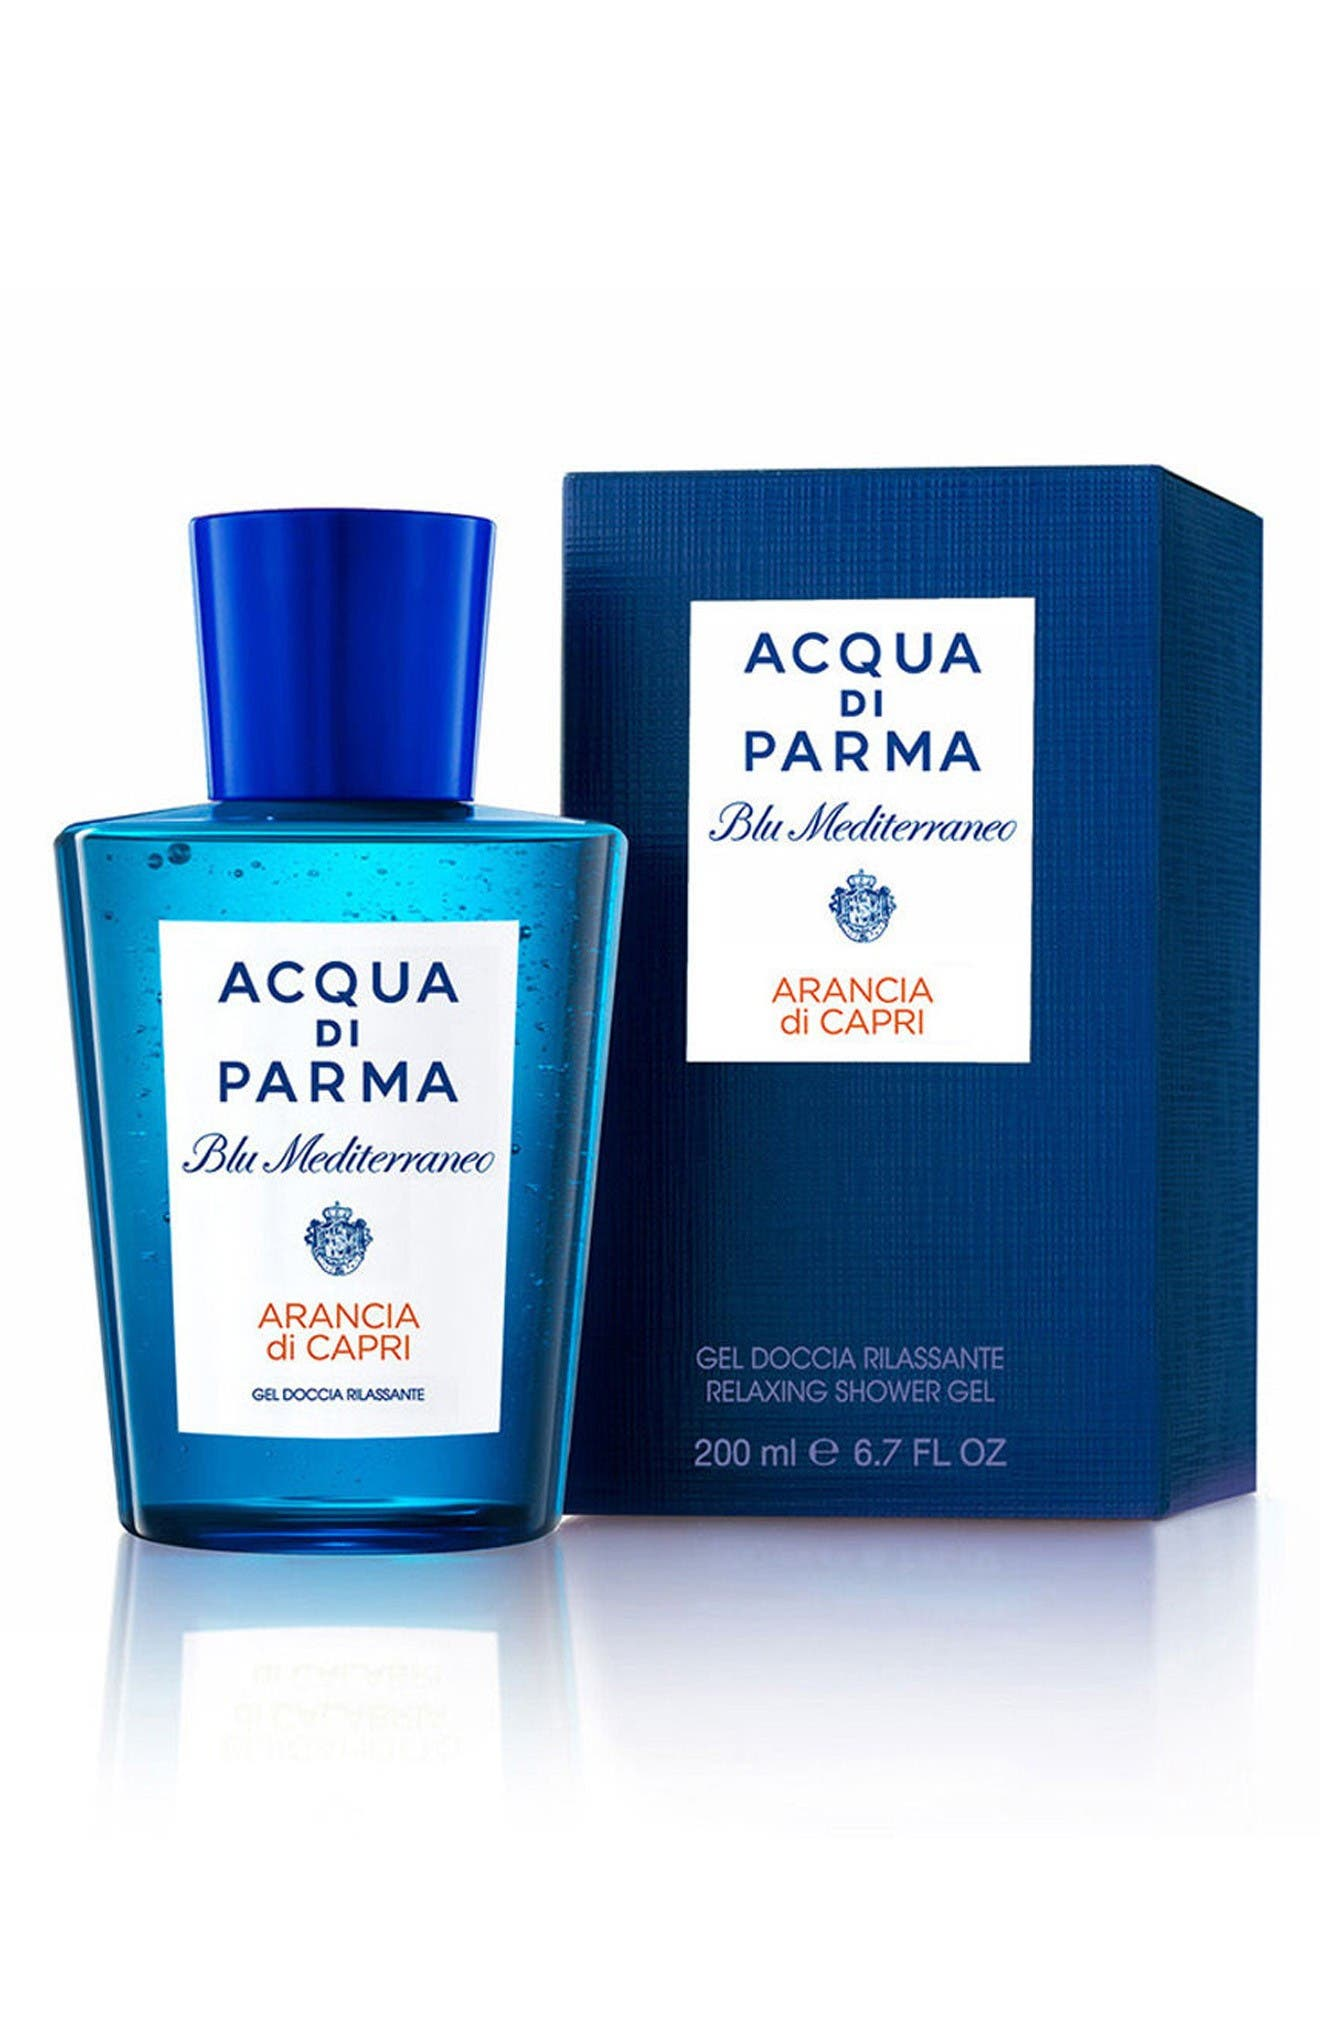 Alternate Image 2  - Acqua di Parma 'Blu Mediterraneo - Arancia di Capri' Shower Gel